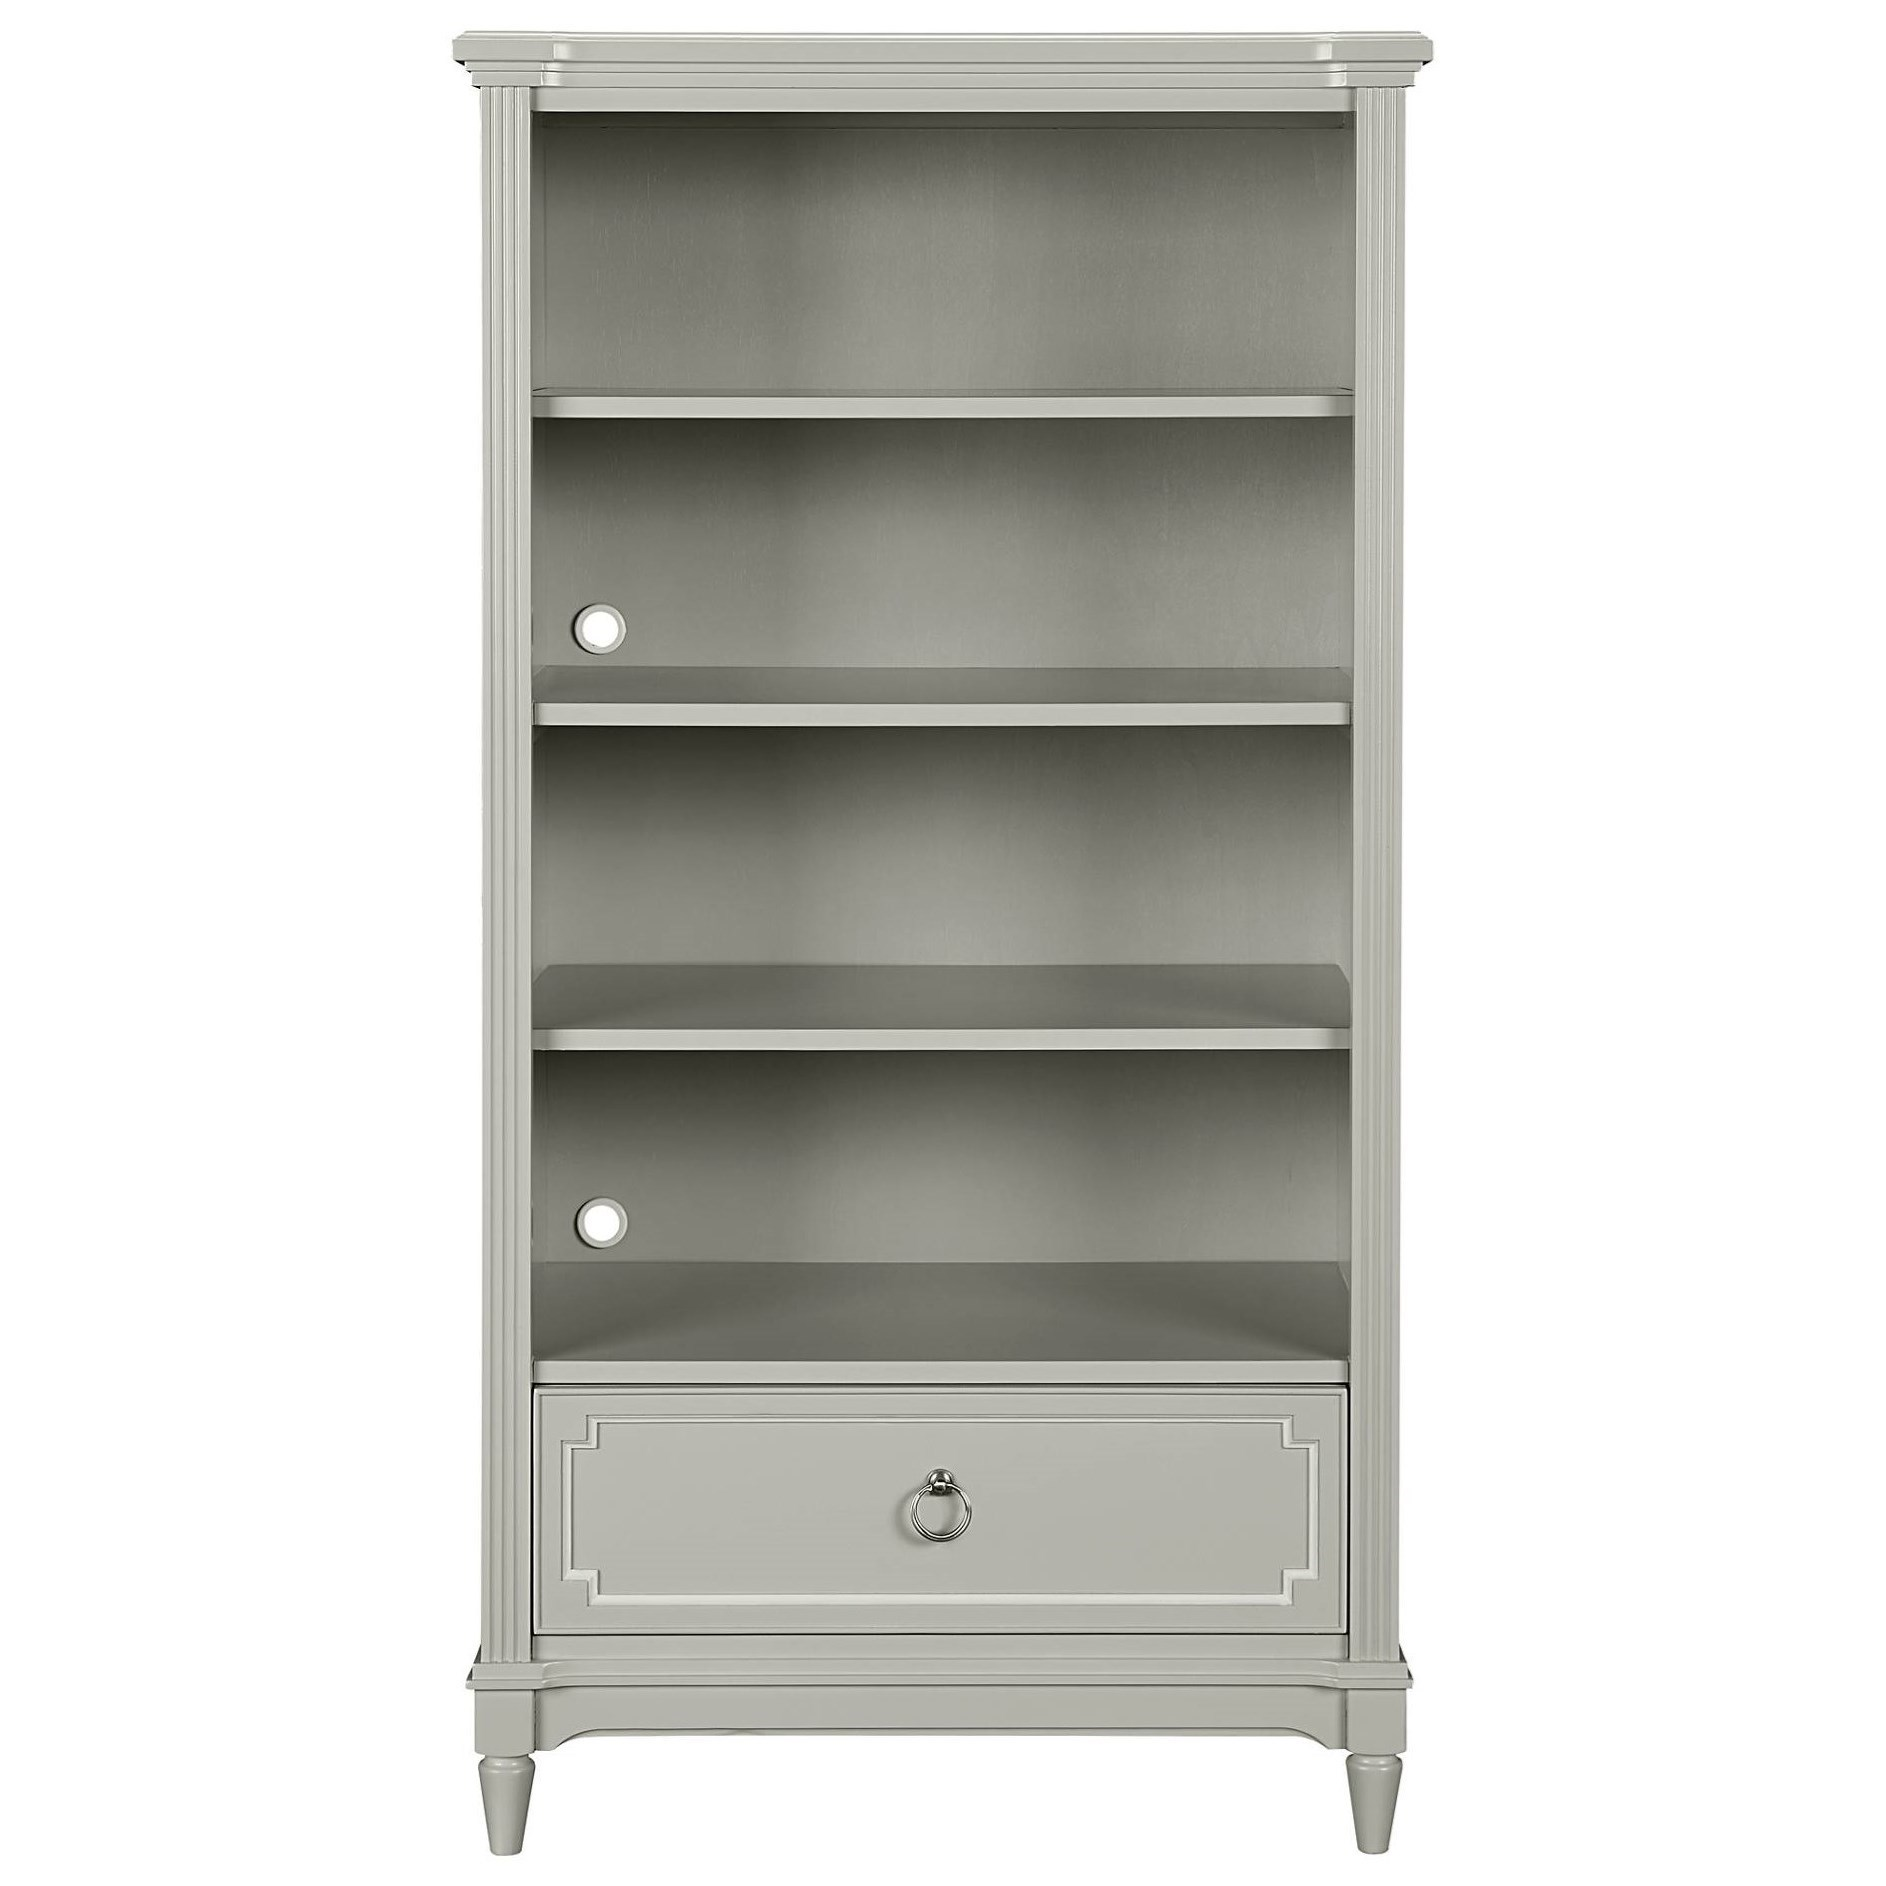 Stone & Leigh Furniture Clementine Court Bookcase - Item Number: 537-53-13